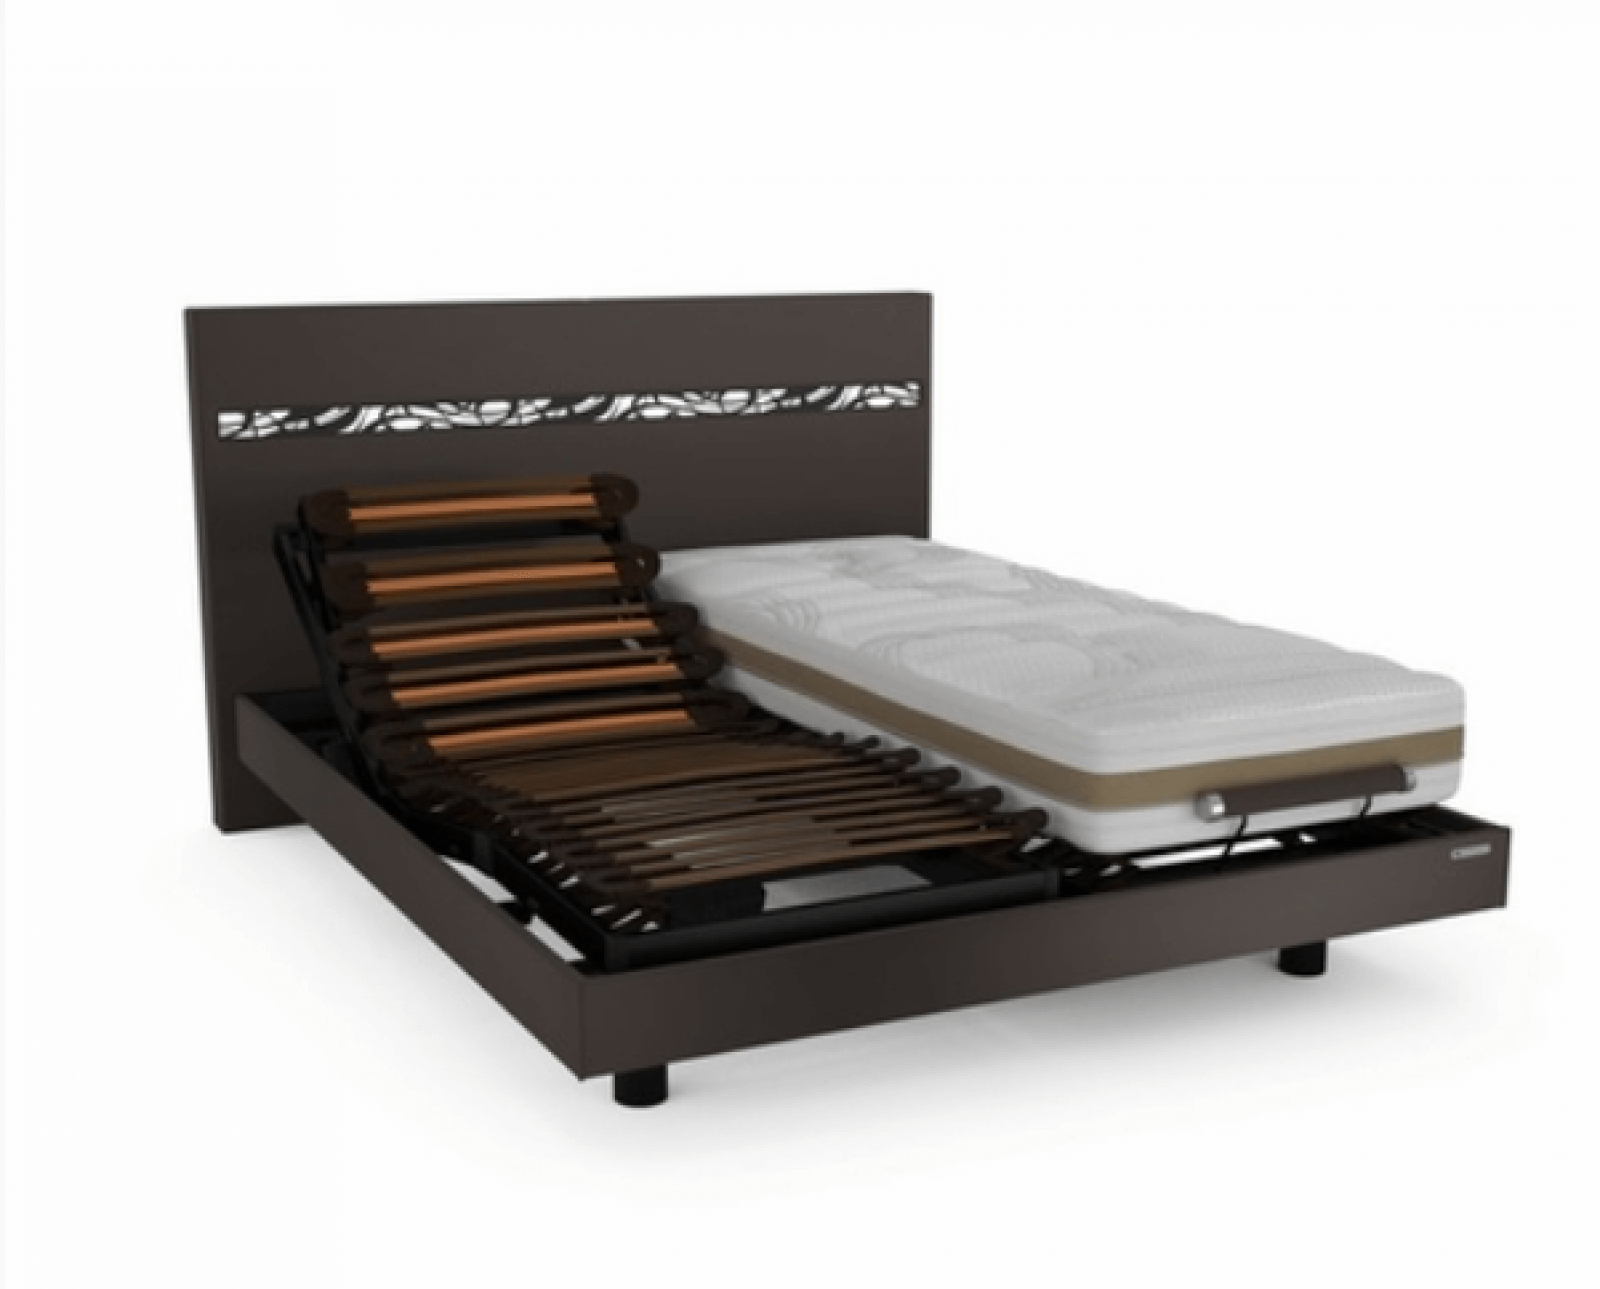 dormir sans sommier dormir sans sommier groupon goods global gmbh matelas mmoire de forme. Black Bedroom Furniture Sets. Home Design Ideas